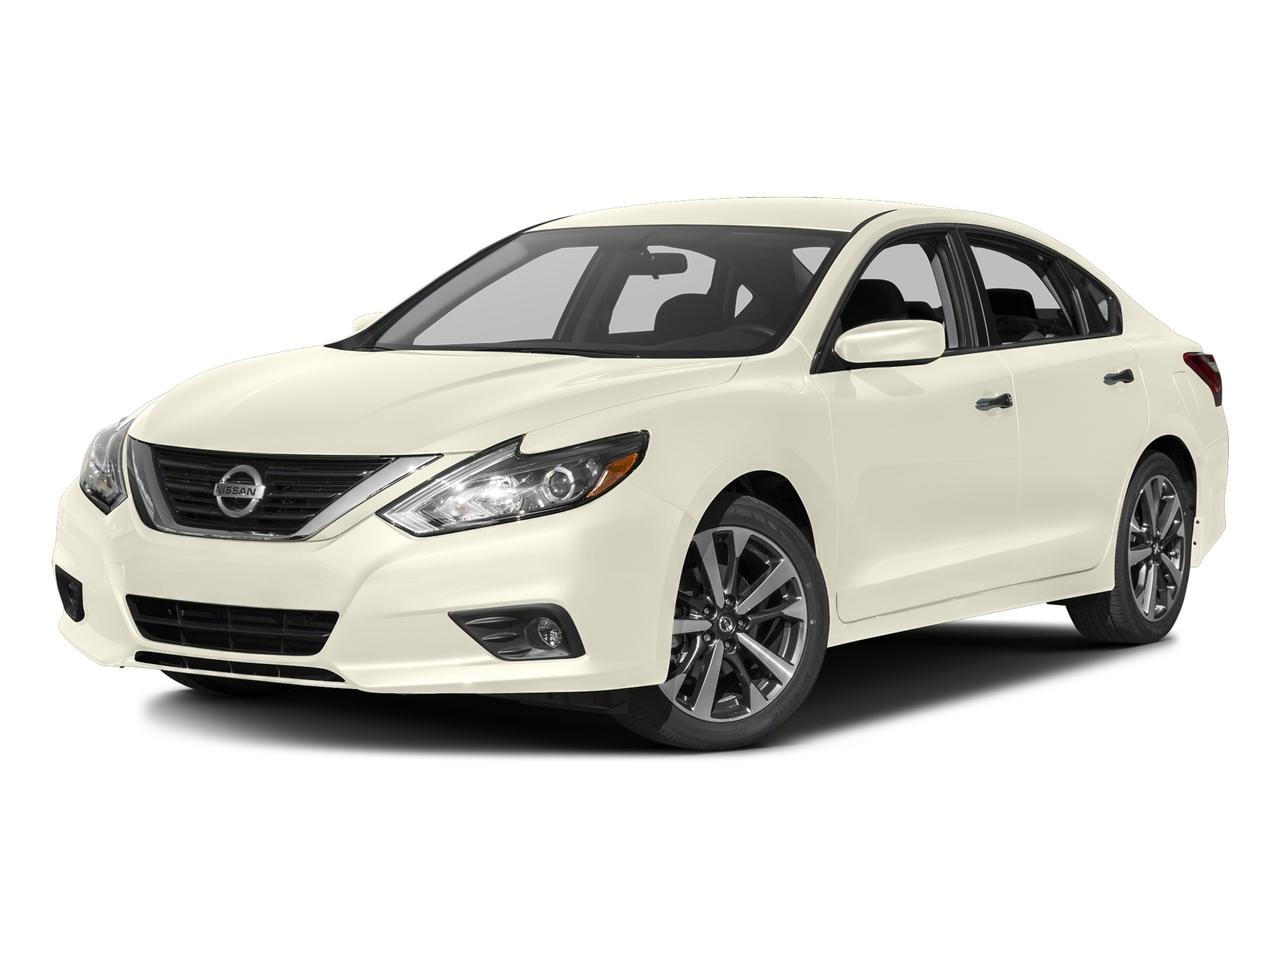 2016 Nissan Altima Vehicle Photo in Jenkintown, PA 19046